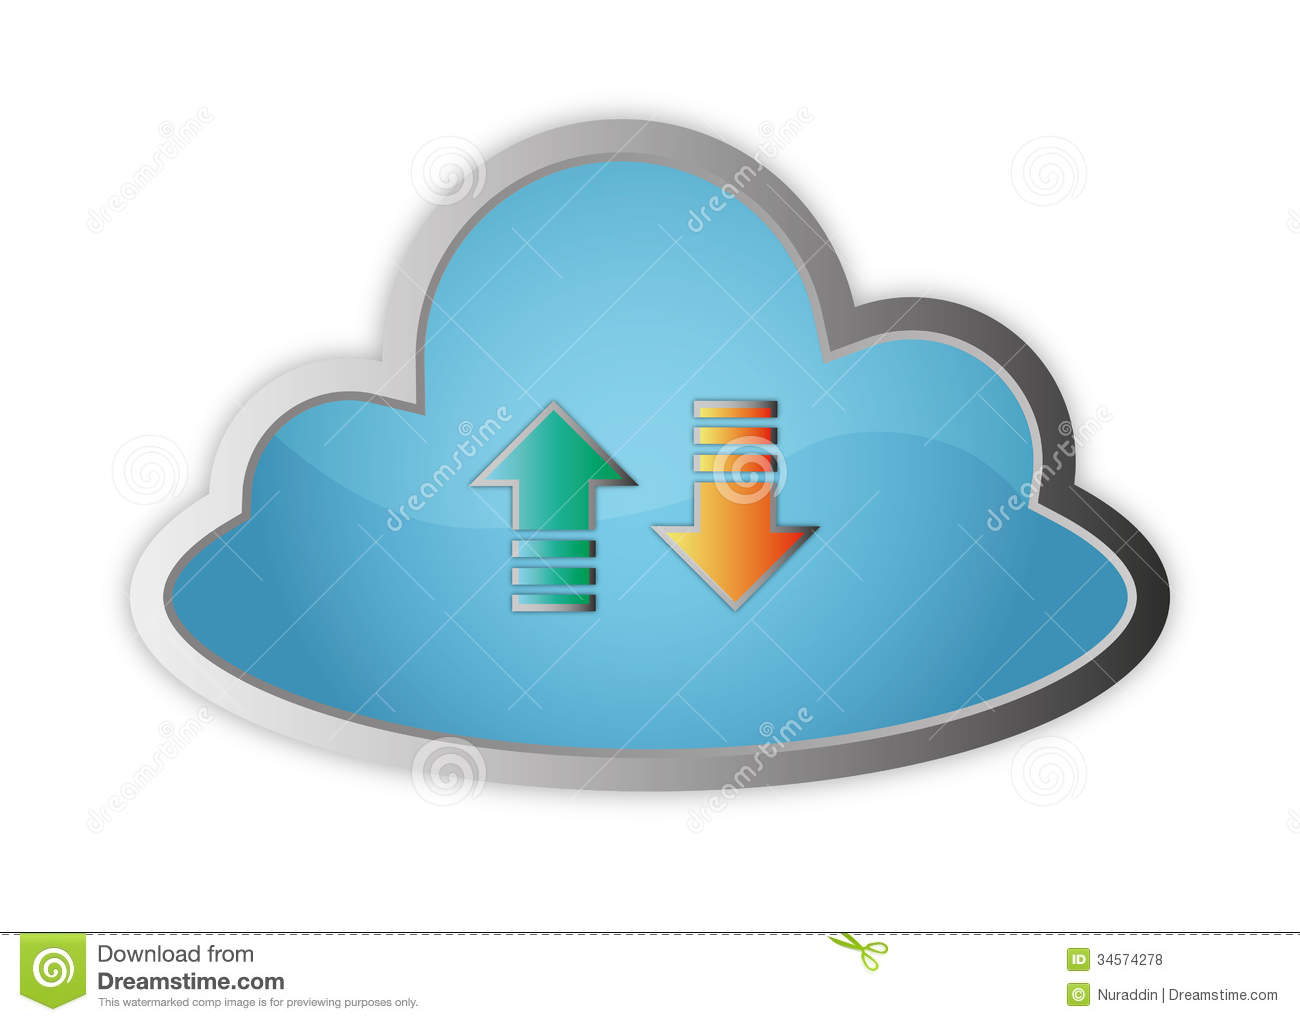 Free cloud based storage for business cards